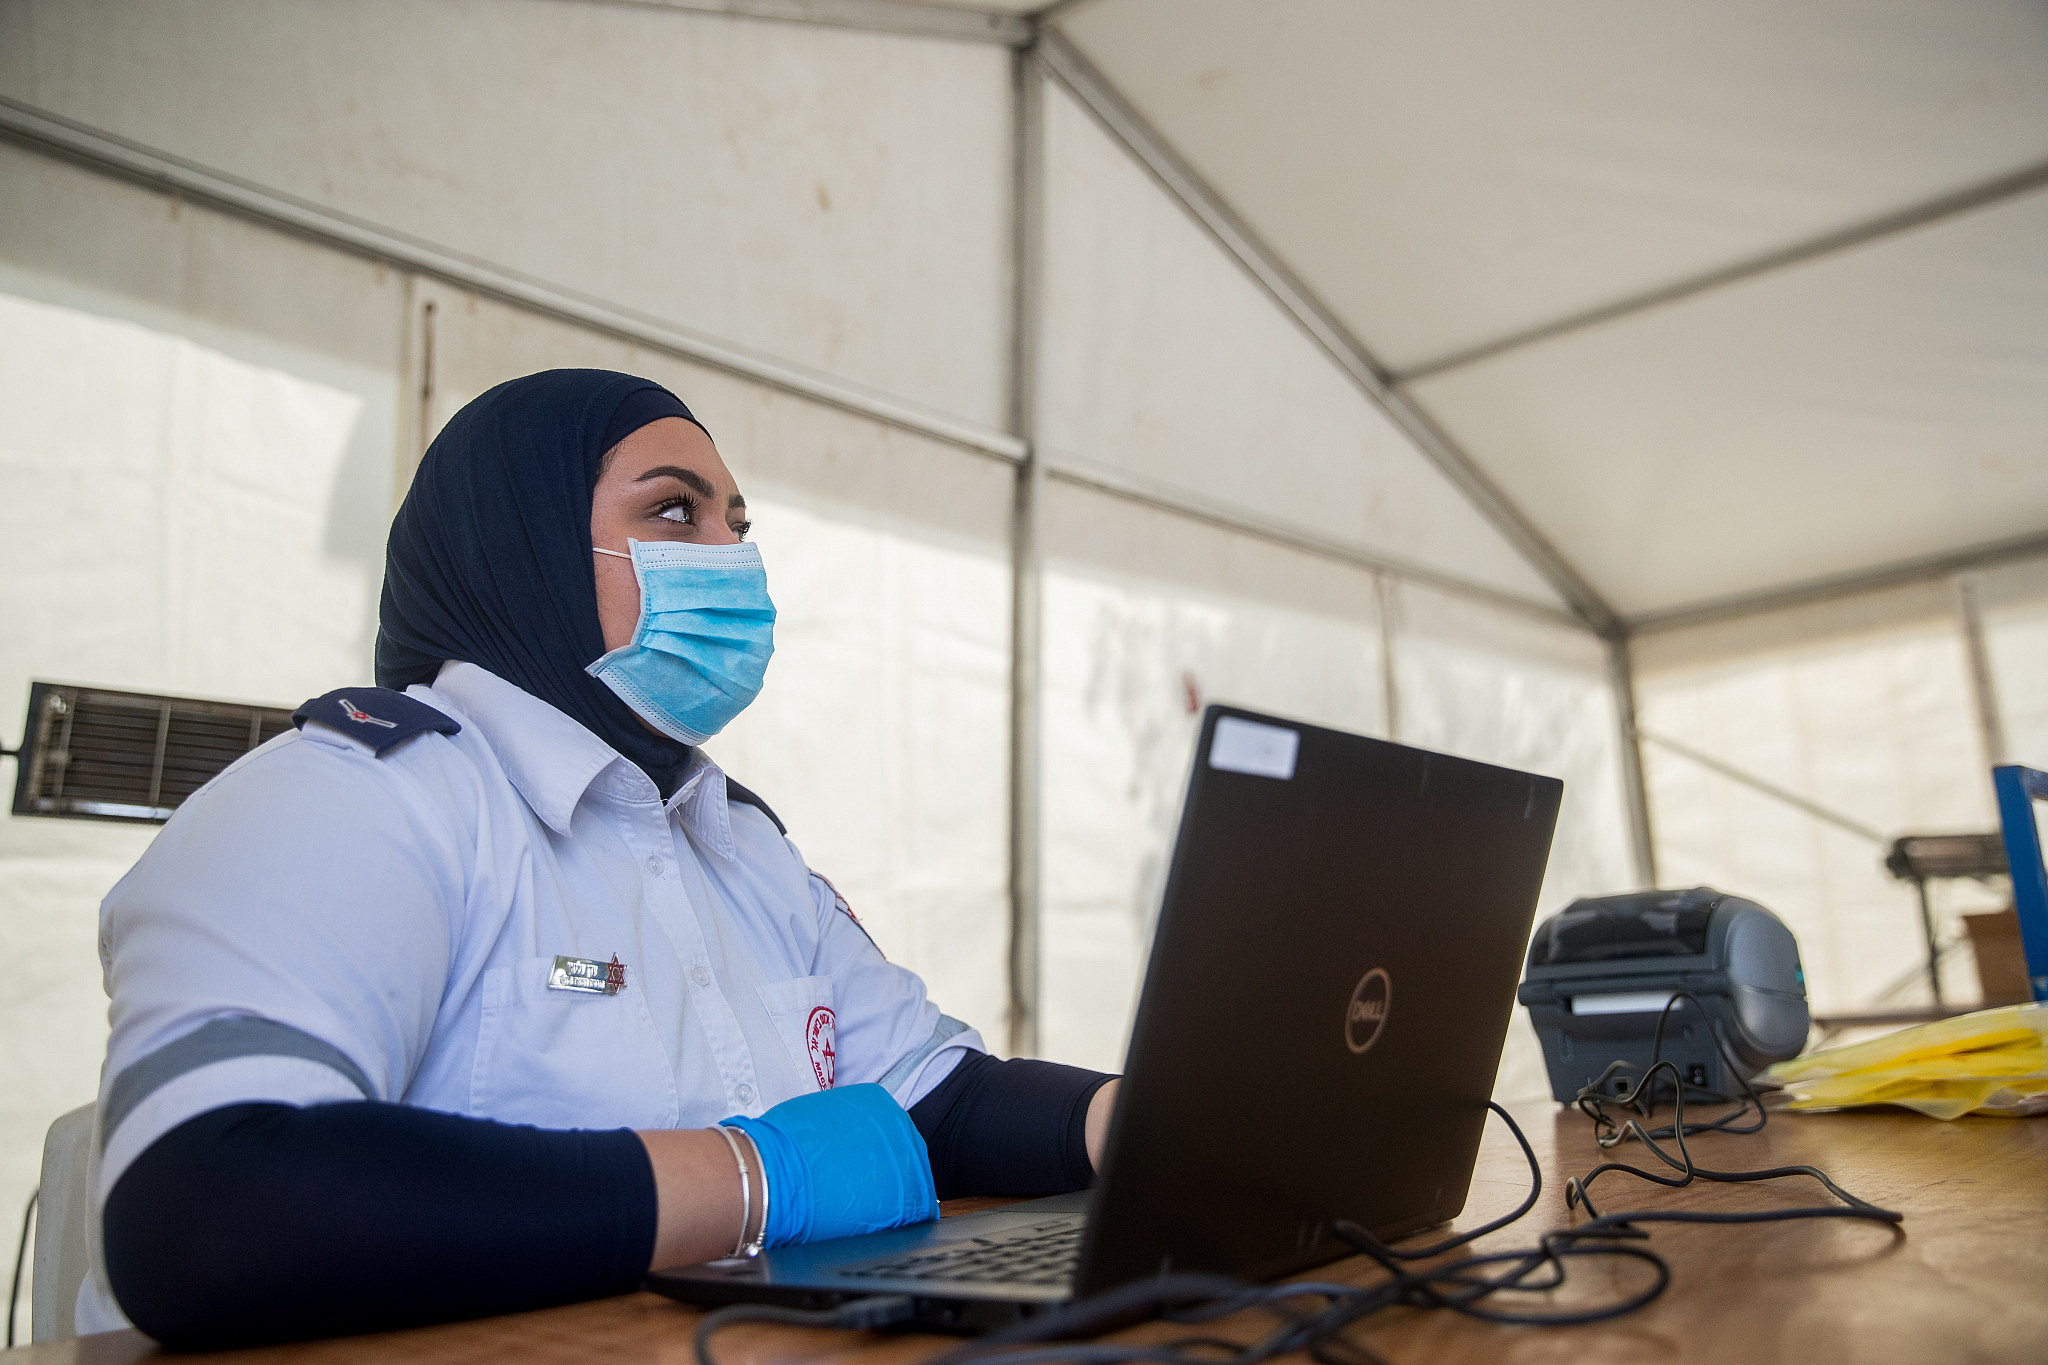 Magen David Adom medical workers seen at a drive-through site to collect samples for coronavirus testing, at the entrance to the East Jerusalem neighborhood of Jabal Mukaber, on April 2, 2020. (Yonatan Sindel/Flash90)